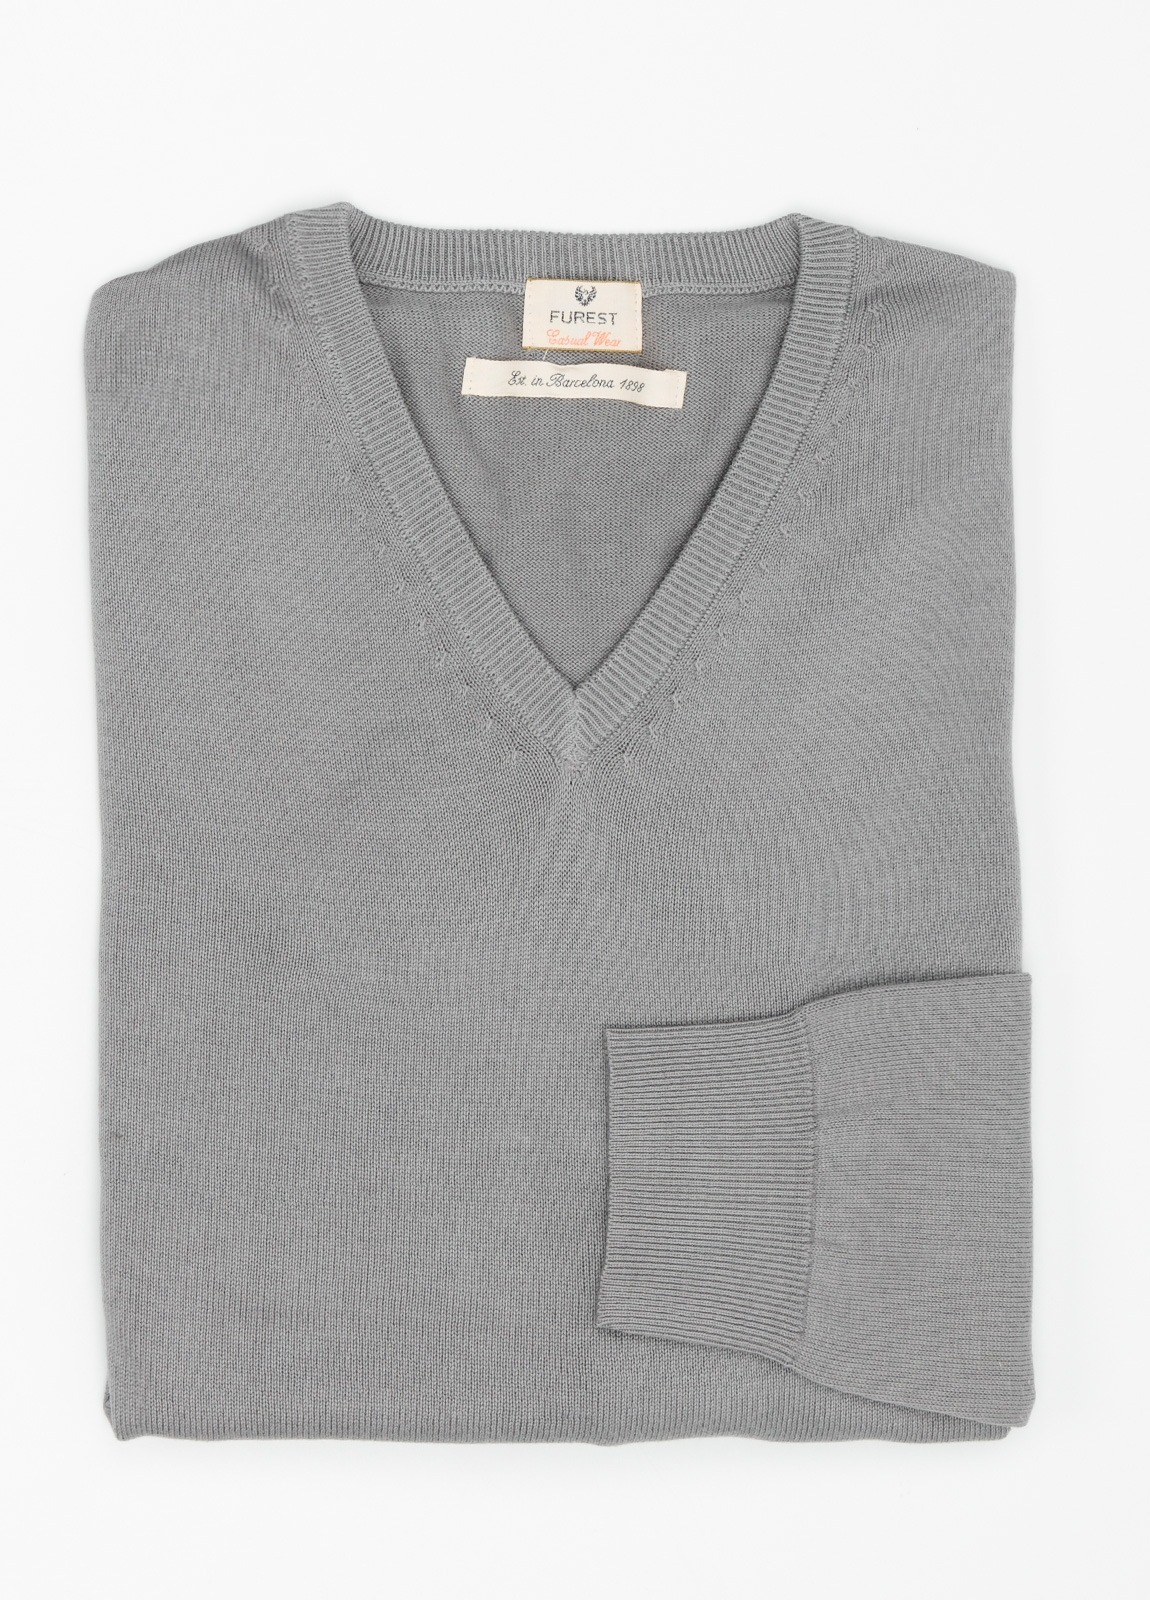 Jersey Casual Wear, SLIM FIT cuello pico color verde gris, 100% algodón.